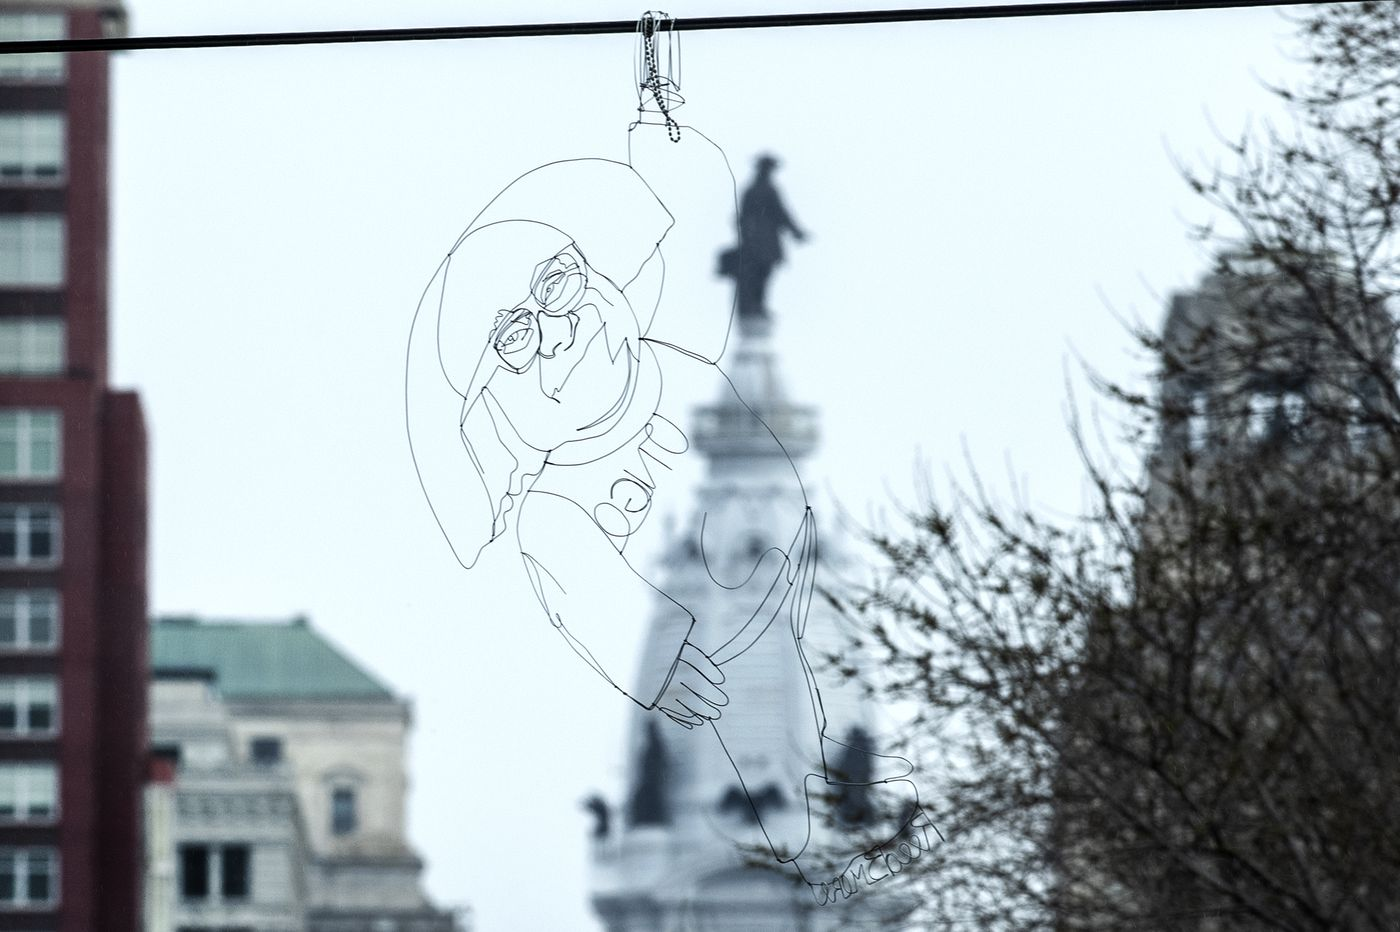 Dangling Danny DeVito sculpture from 'It's Always Sunny' is the latest Philly high-wire act by a Baltimore street artist